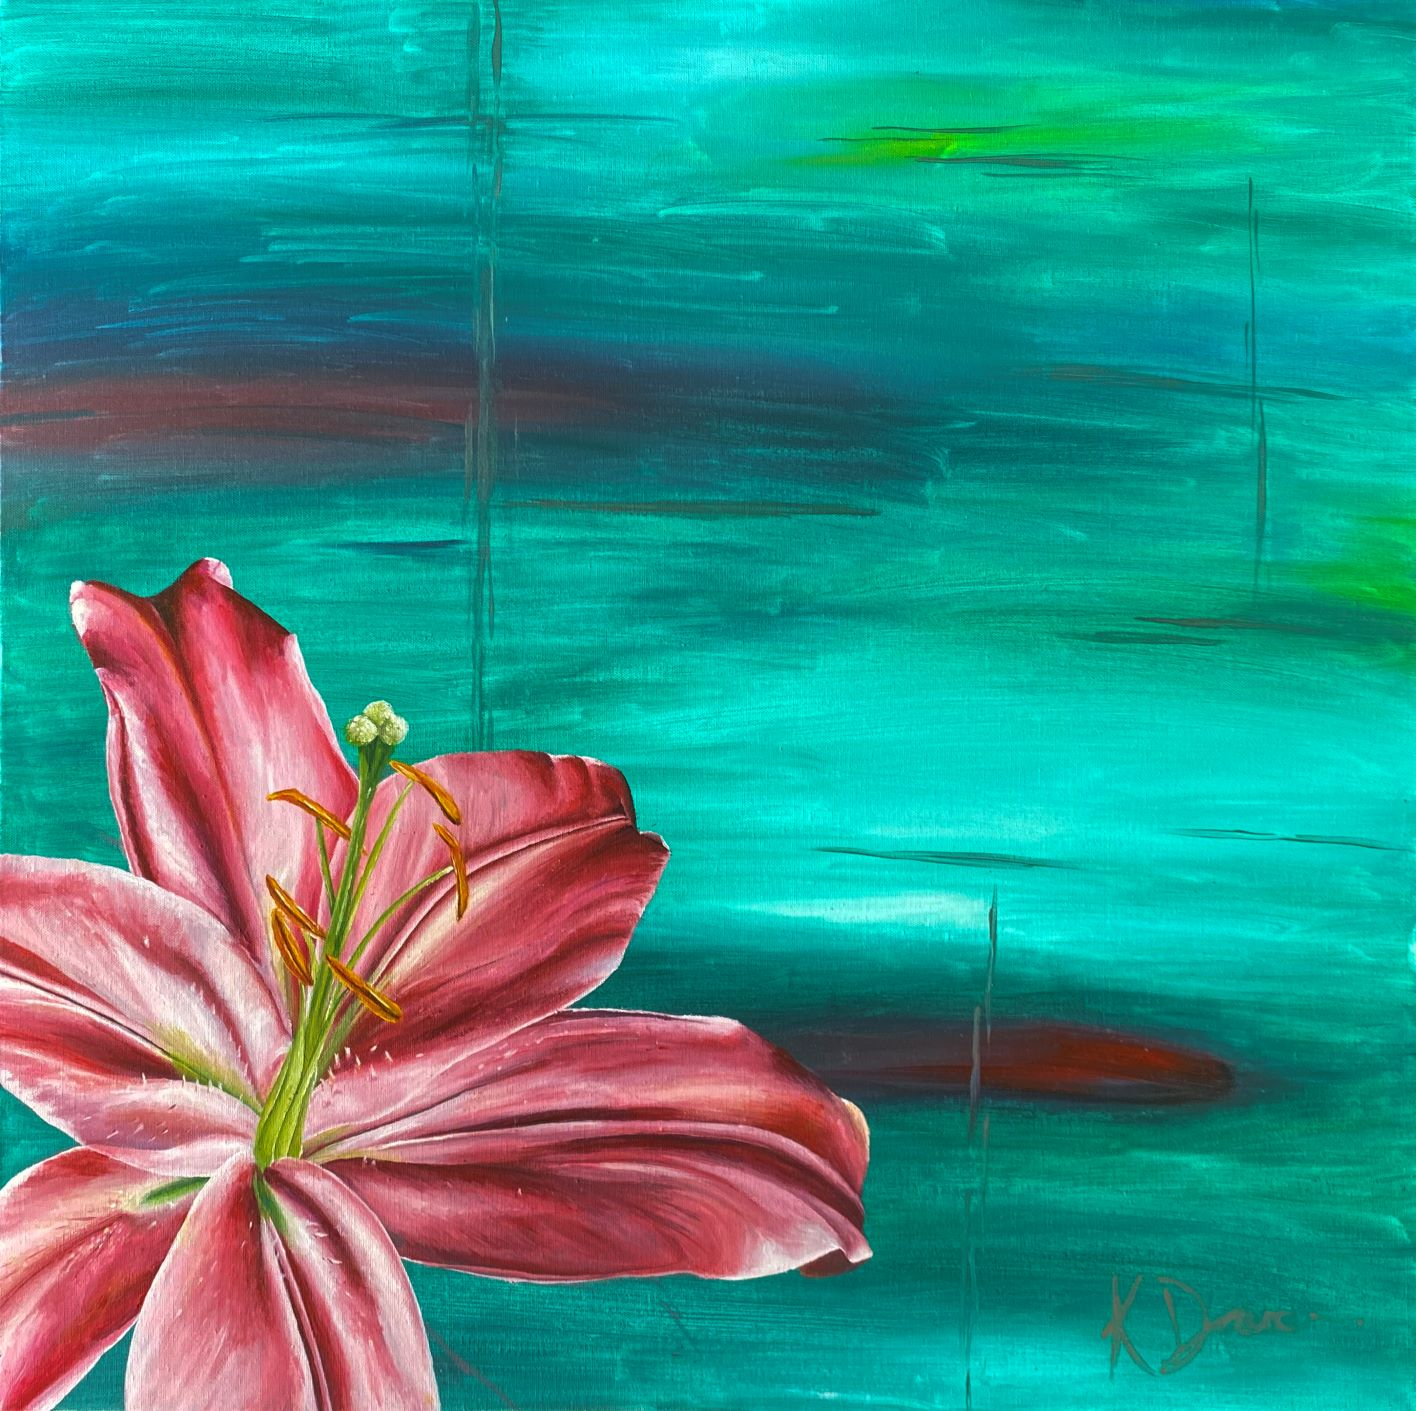 Lily Burst – Giclée Print of pink lily from an acrylic on canvas original via @chooicenz